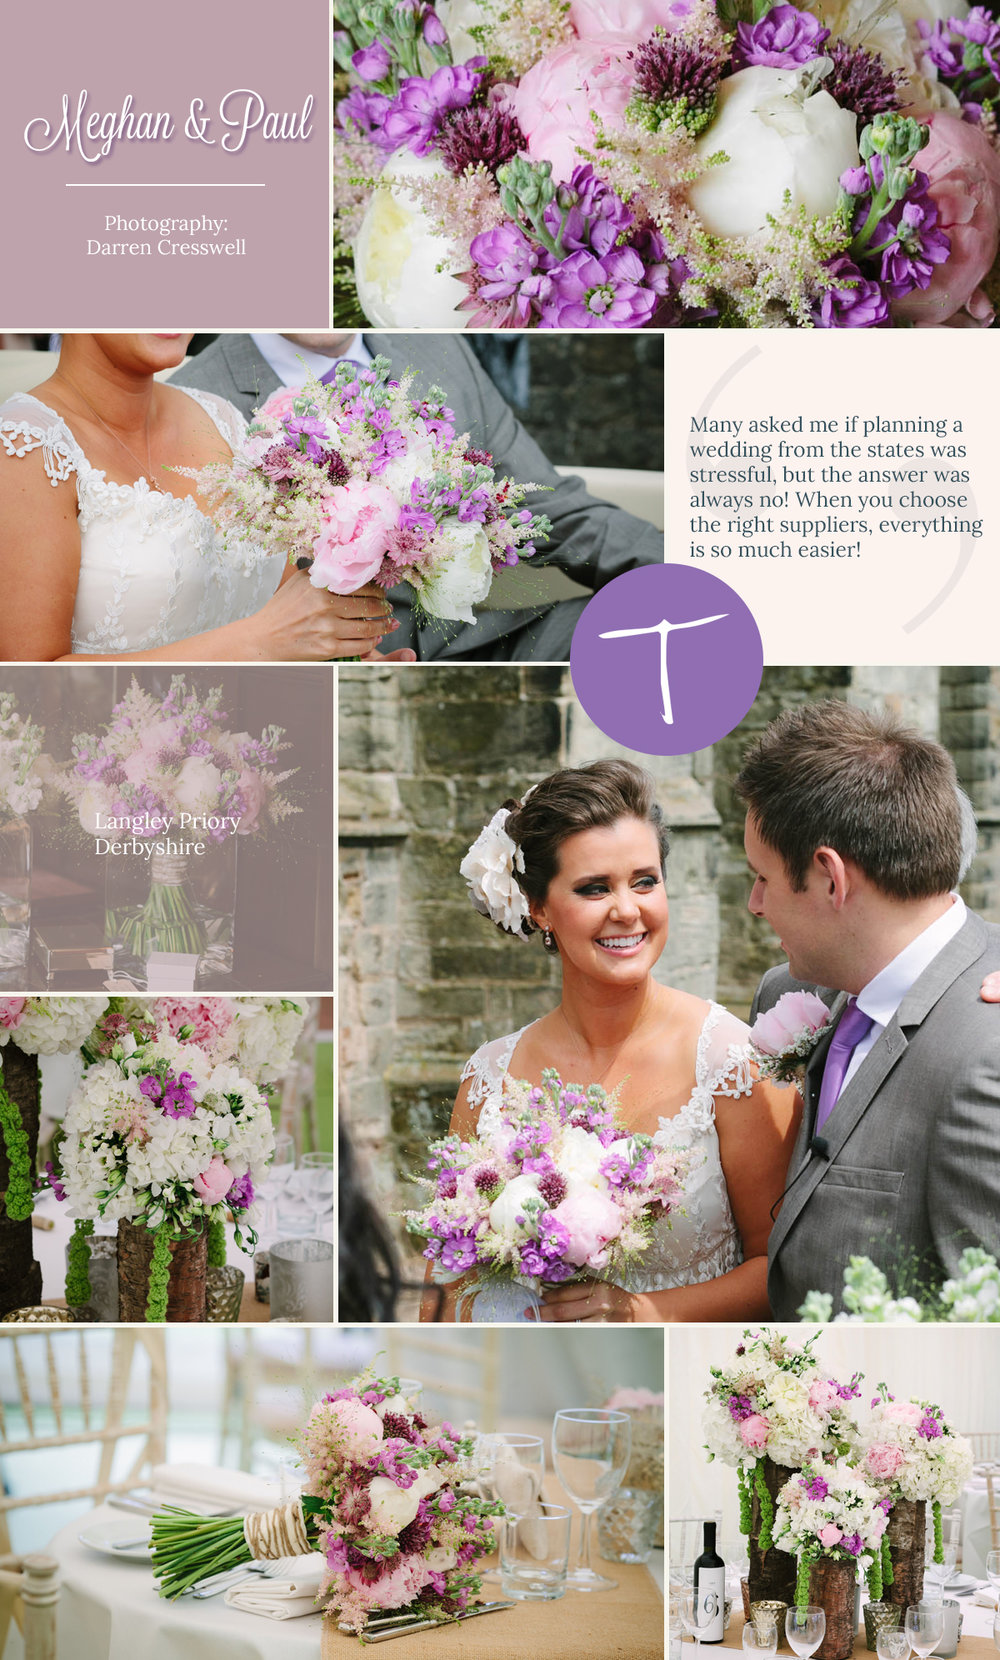 A langley priory wedding with floral decoration and styling by Tineke floral designs in Derbyshire